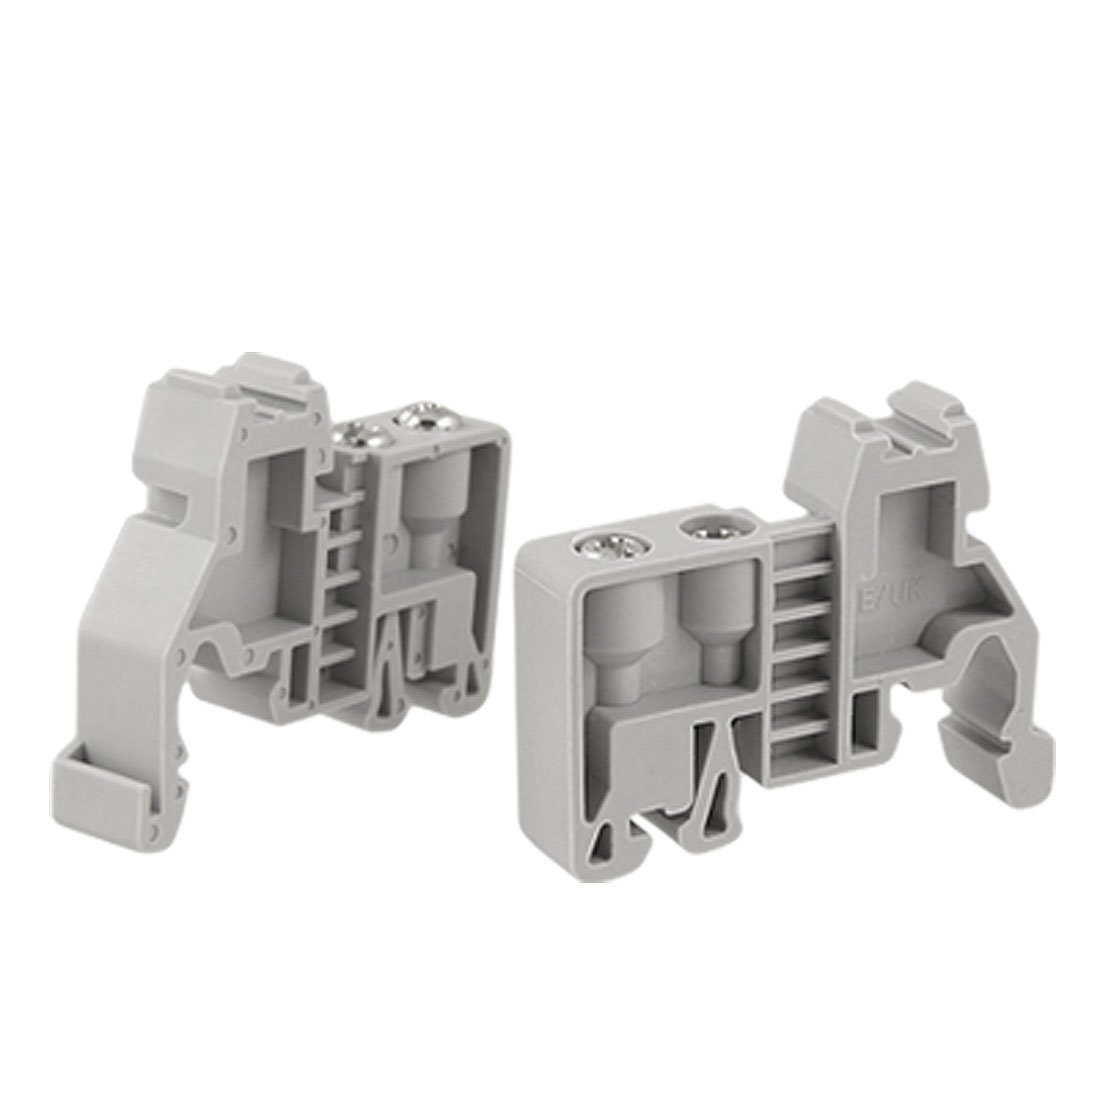 uxcell 2 Pcs 35mm Din Rail Screw Fixed Terminal Block End Stopper Clamps